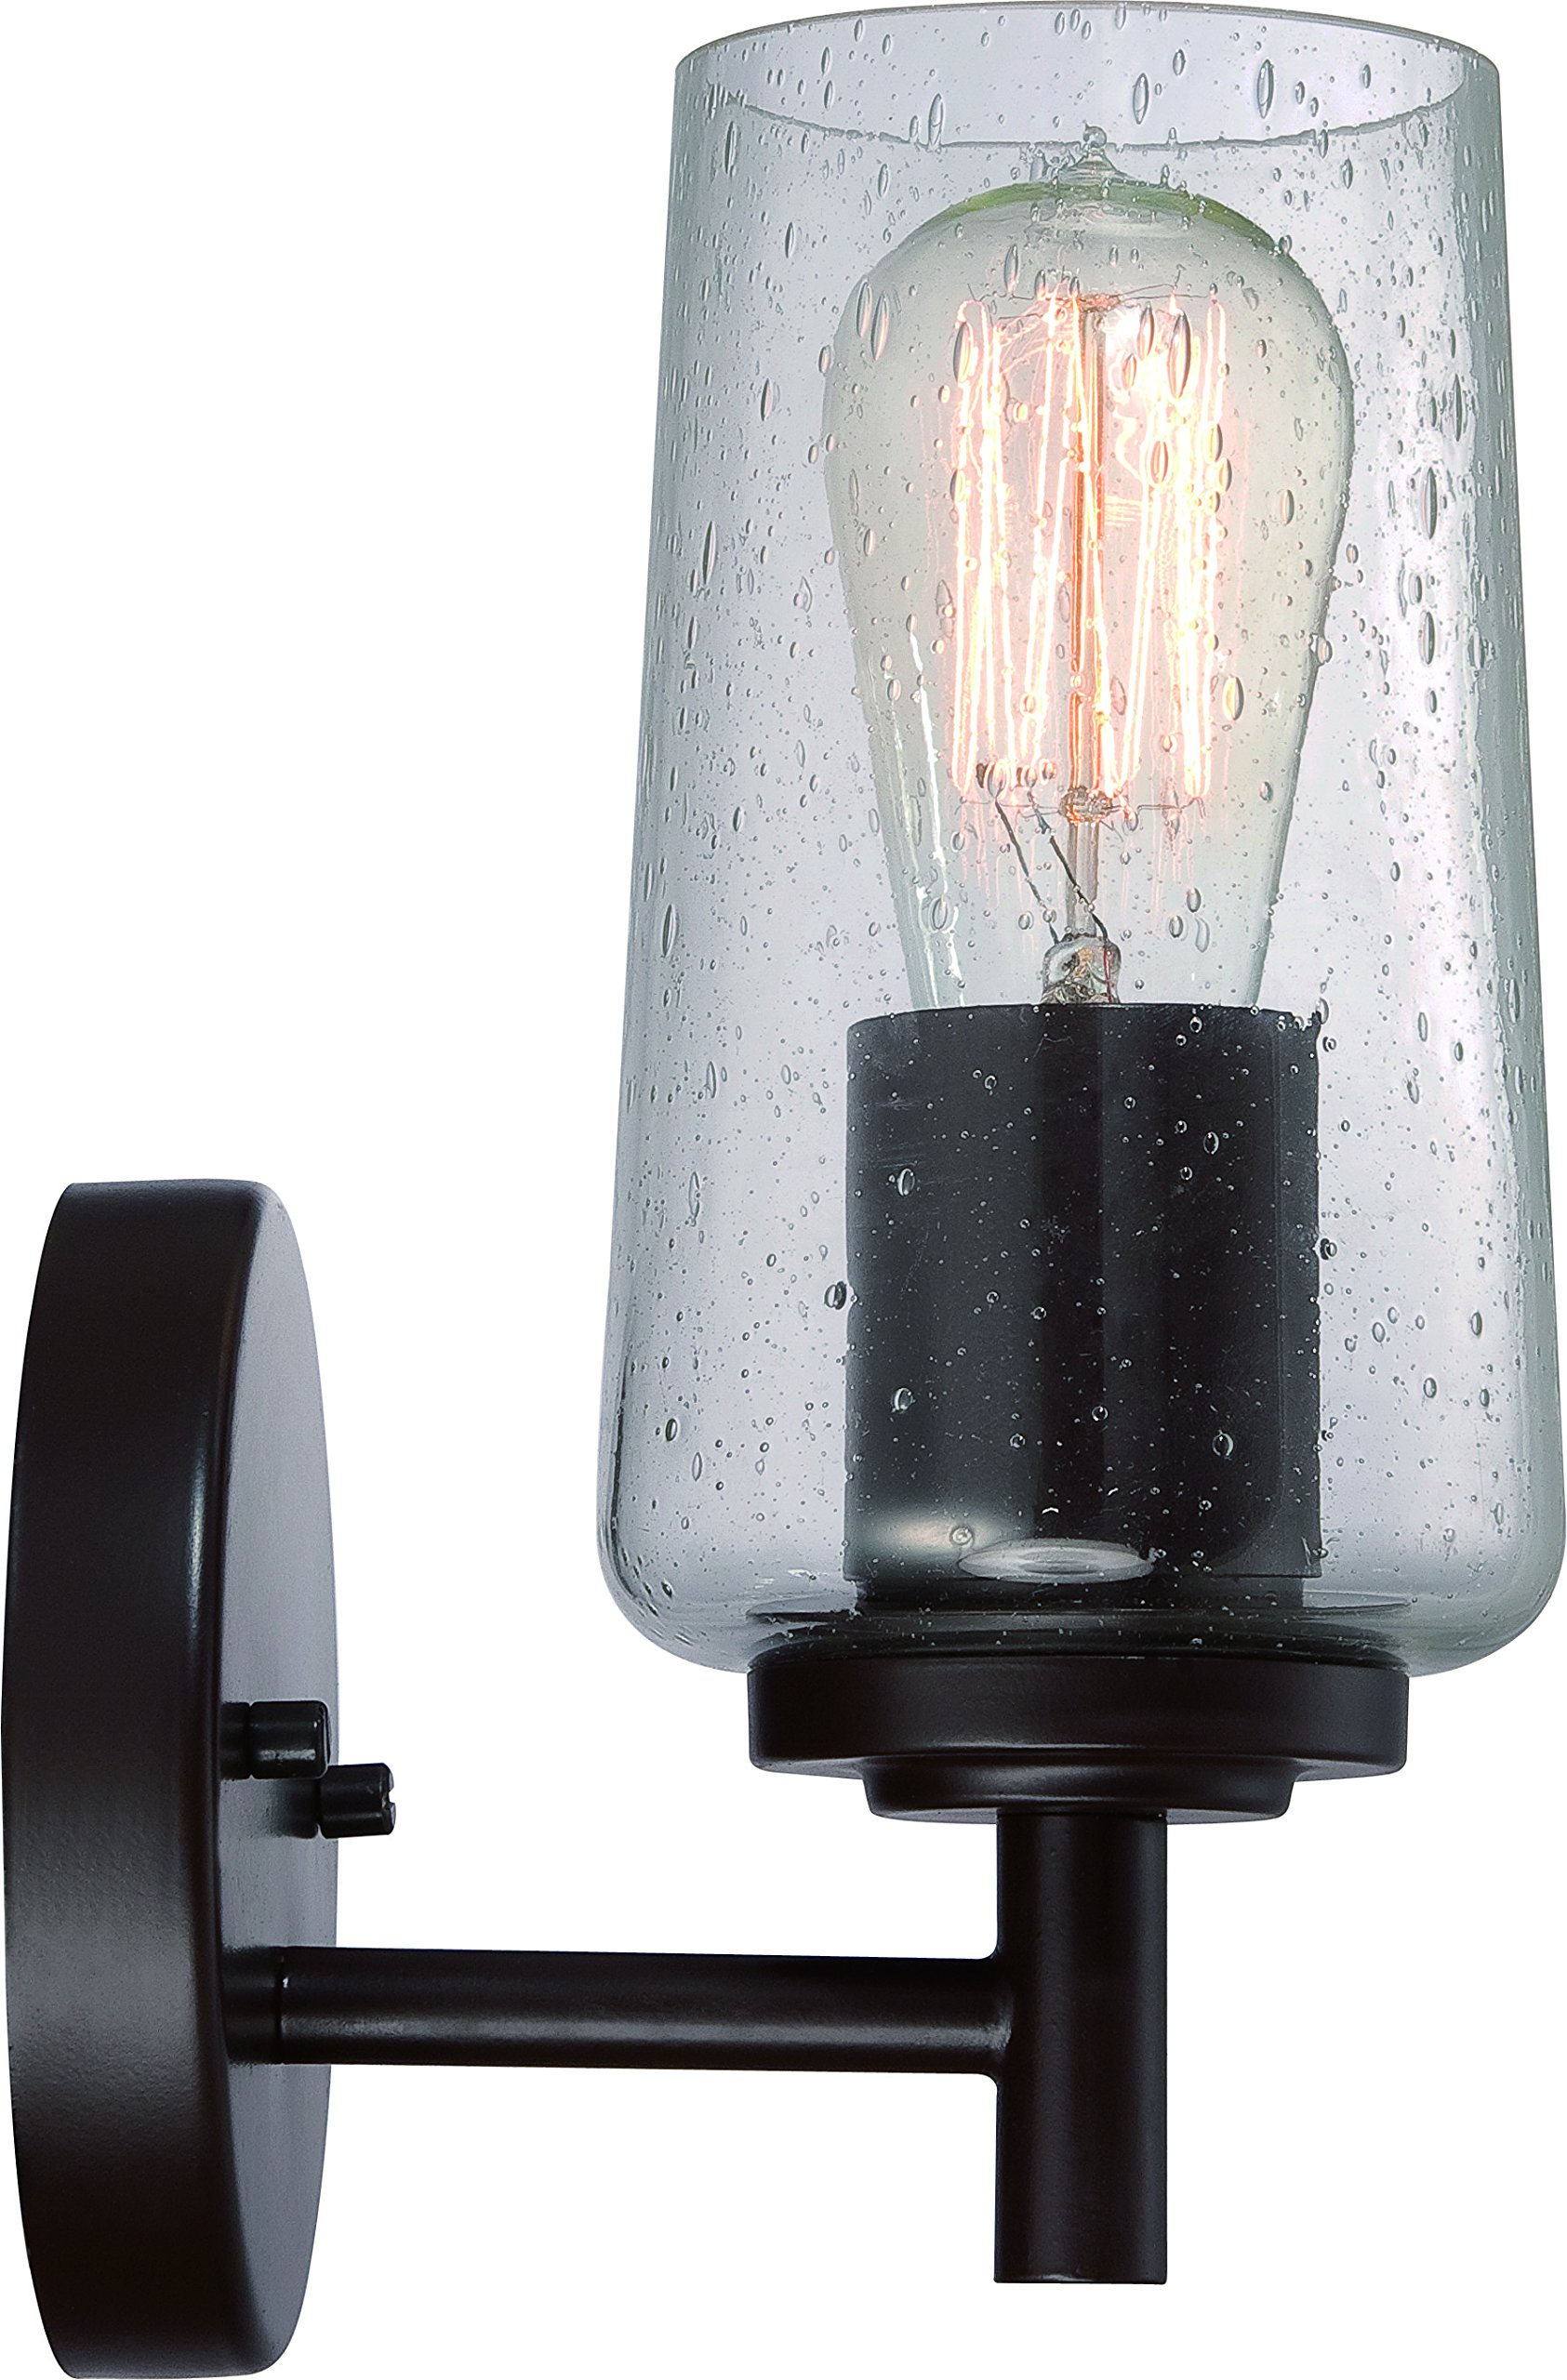 Luxury Vintage Indoor Wall Light, Small Size: 10'' H x 5'' W, with Antique Style Elements, Elegant Estate Bronze Finish and Seeded Glass, Includes Edison Bulb, UQL2270 by Urban Ambiance